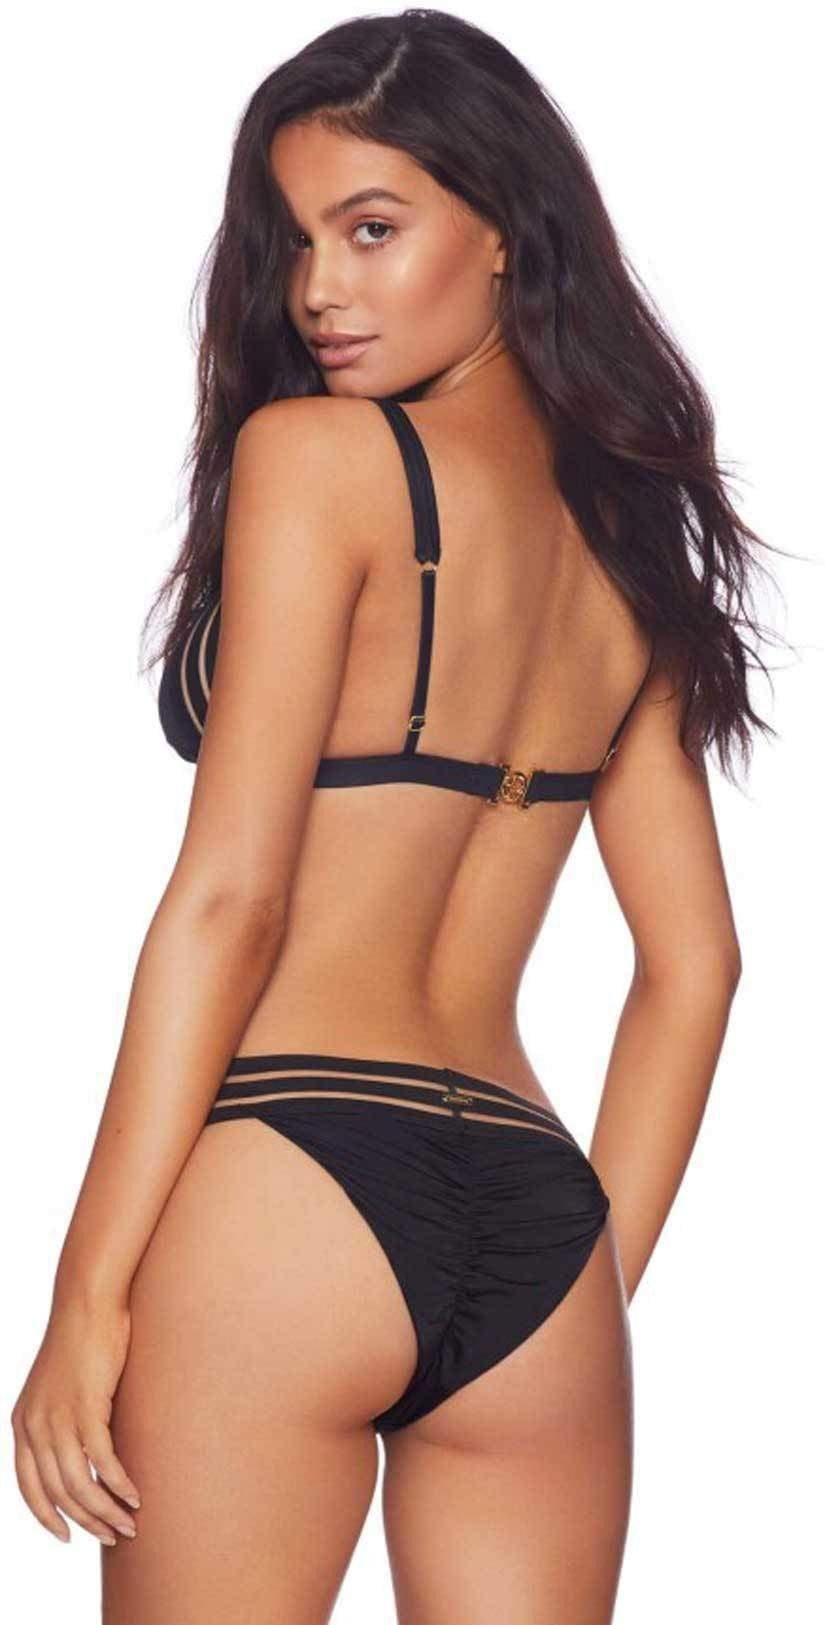 Beach Bunny Sheer Addiction Skimpy Bottom in Black B16125B1-BLCK Back View